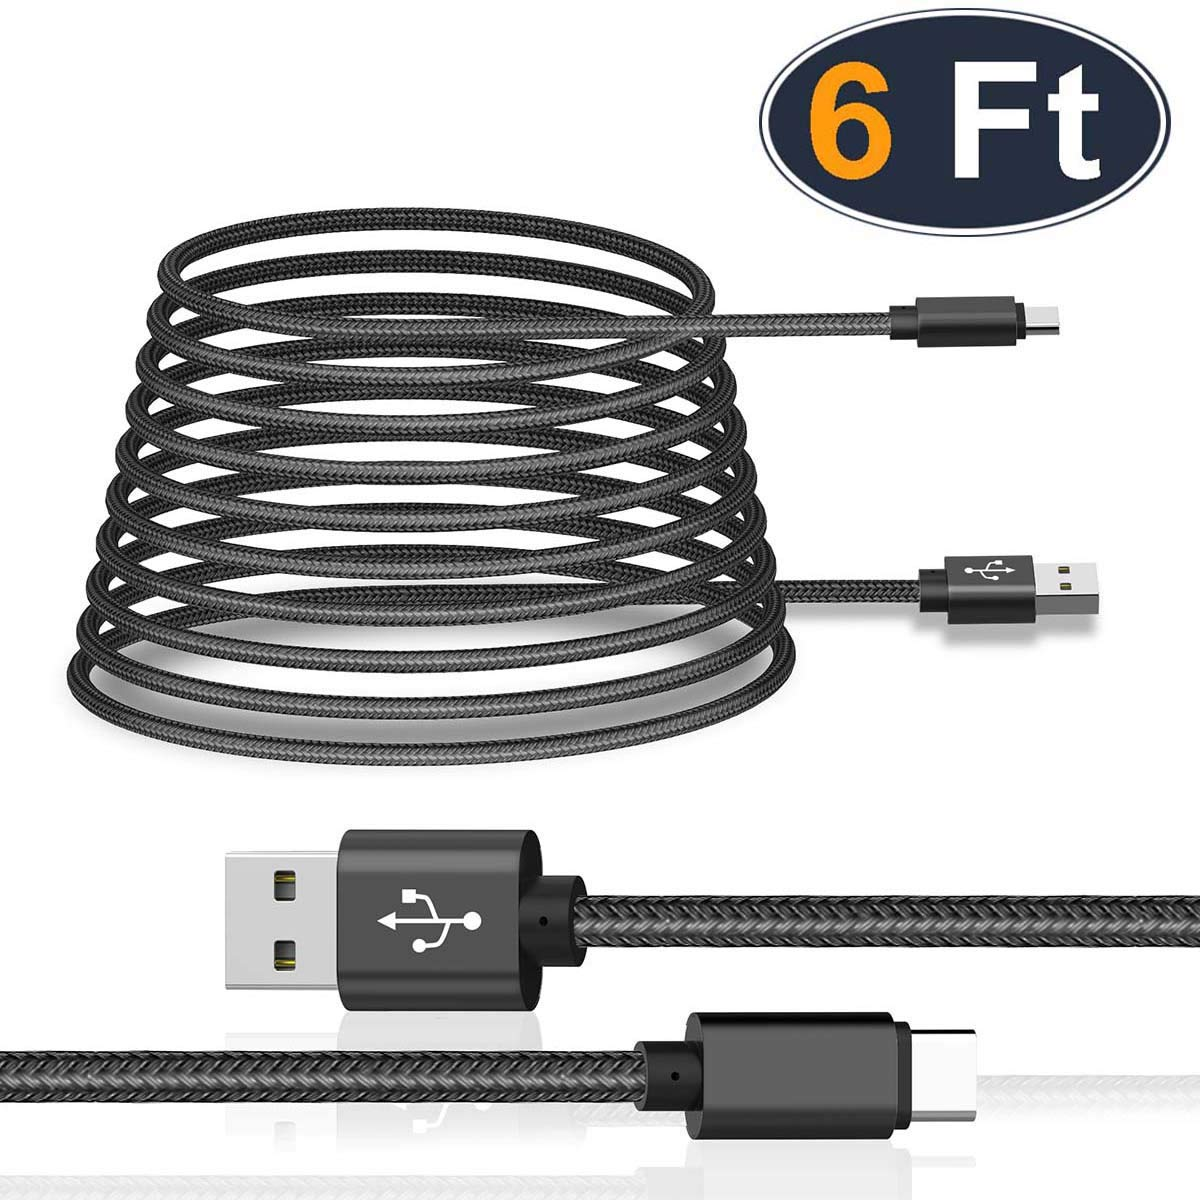 USB Type C Cable 3-Pack,6.6 FT, Silver and More USB C Devices USB A to USB-C Fast Charging Nylon Braided Cord Compatible with Samsung Galaxy S10 S9 S8 Plus Note 9 8,Moto Z,LG V30 V20 G5 UGI